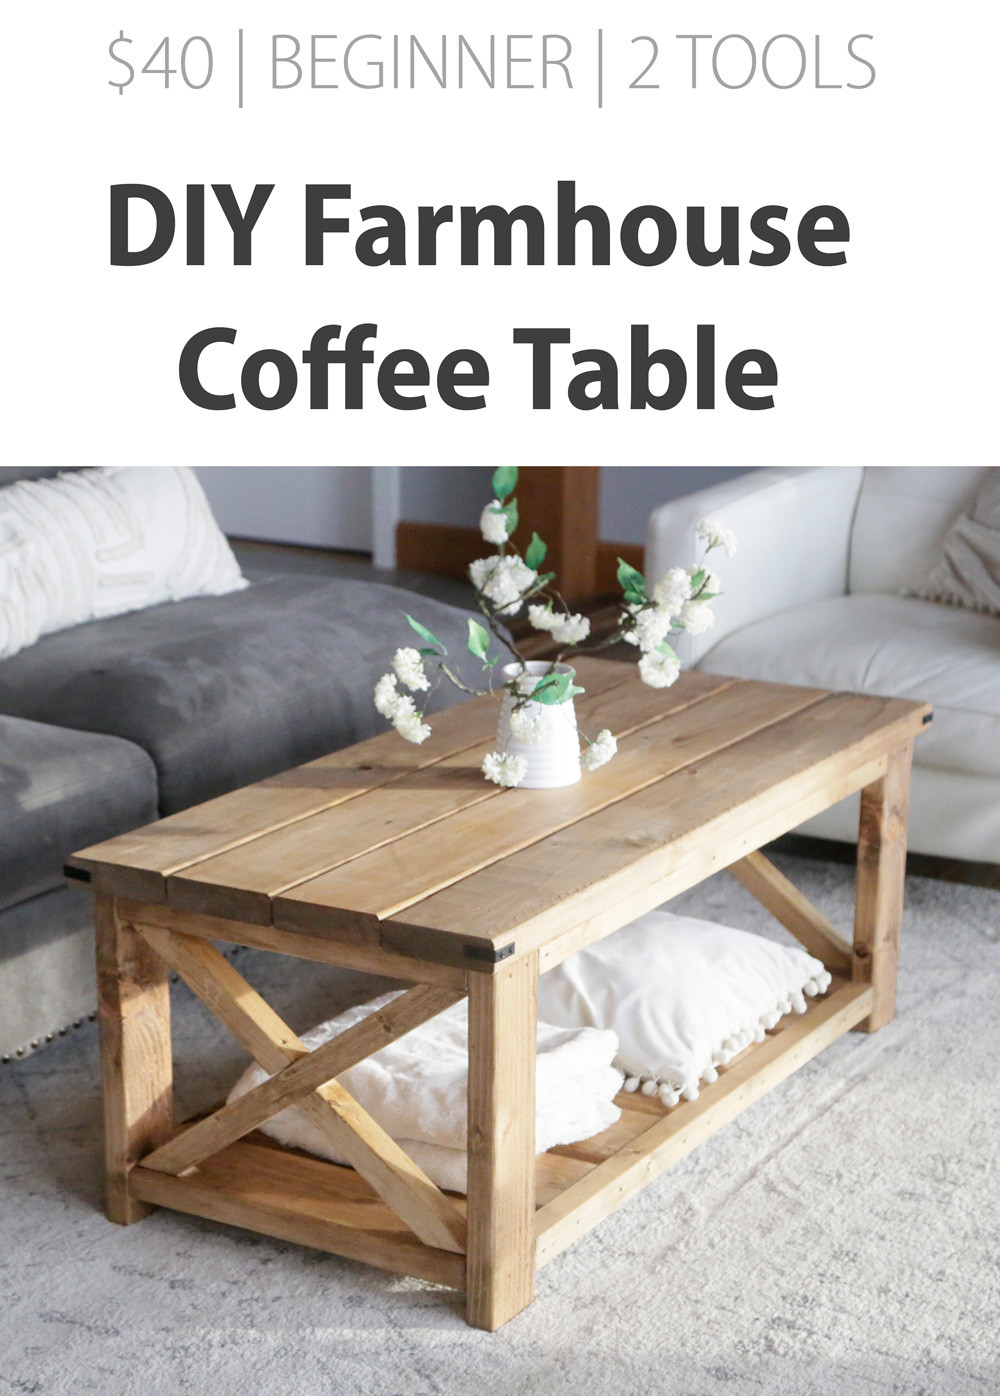 Farmhouse Coffee Table Beginner Under 40 Ana White